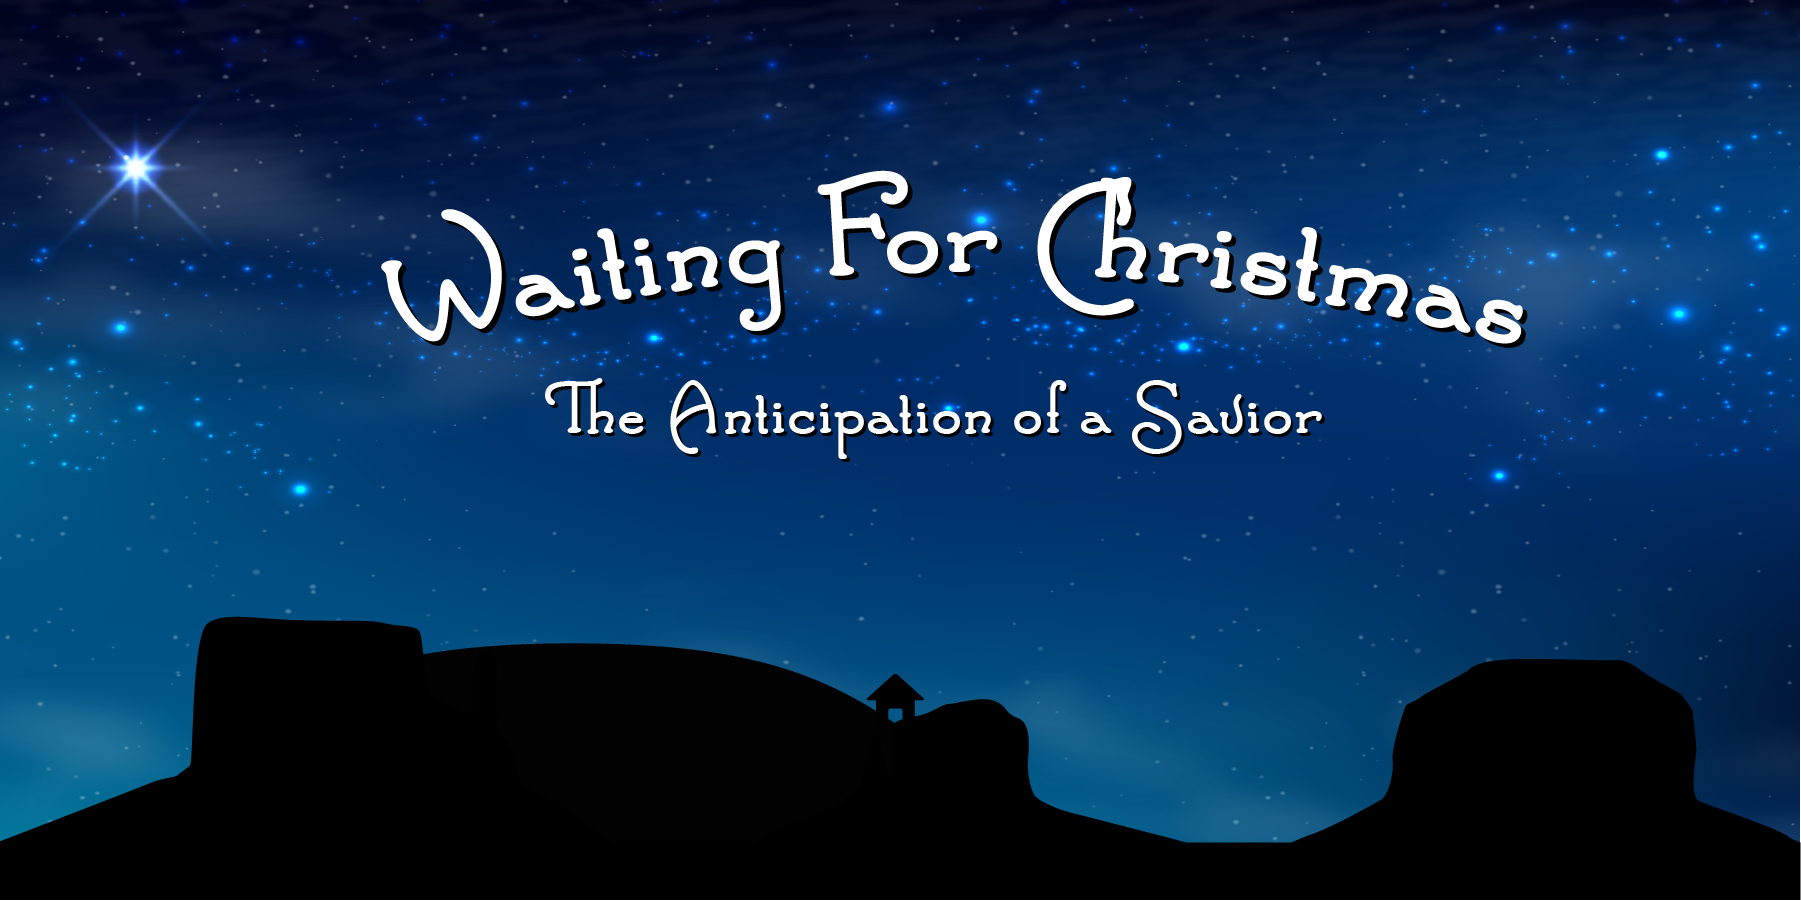 Waiting for Christmas Webslide